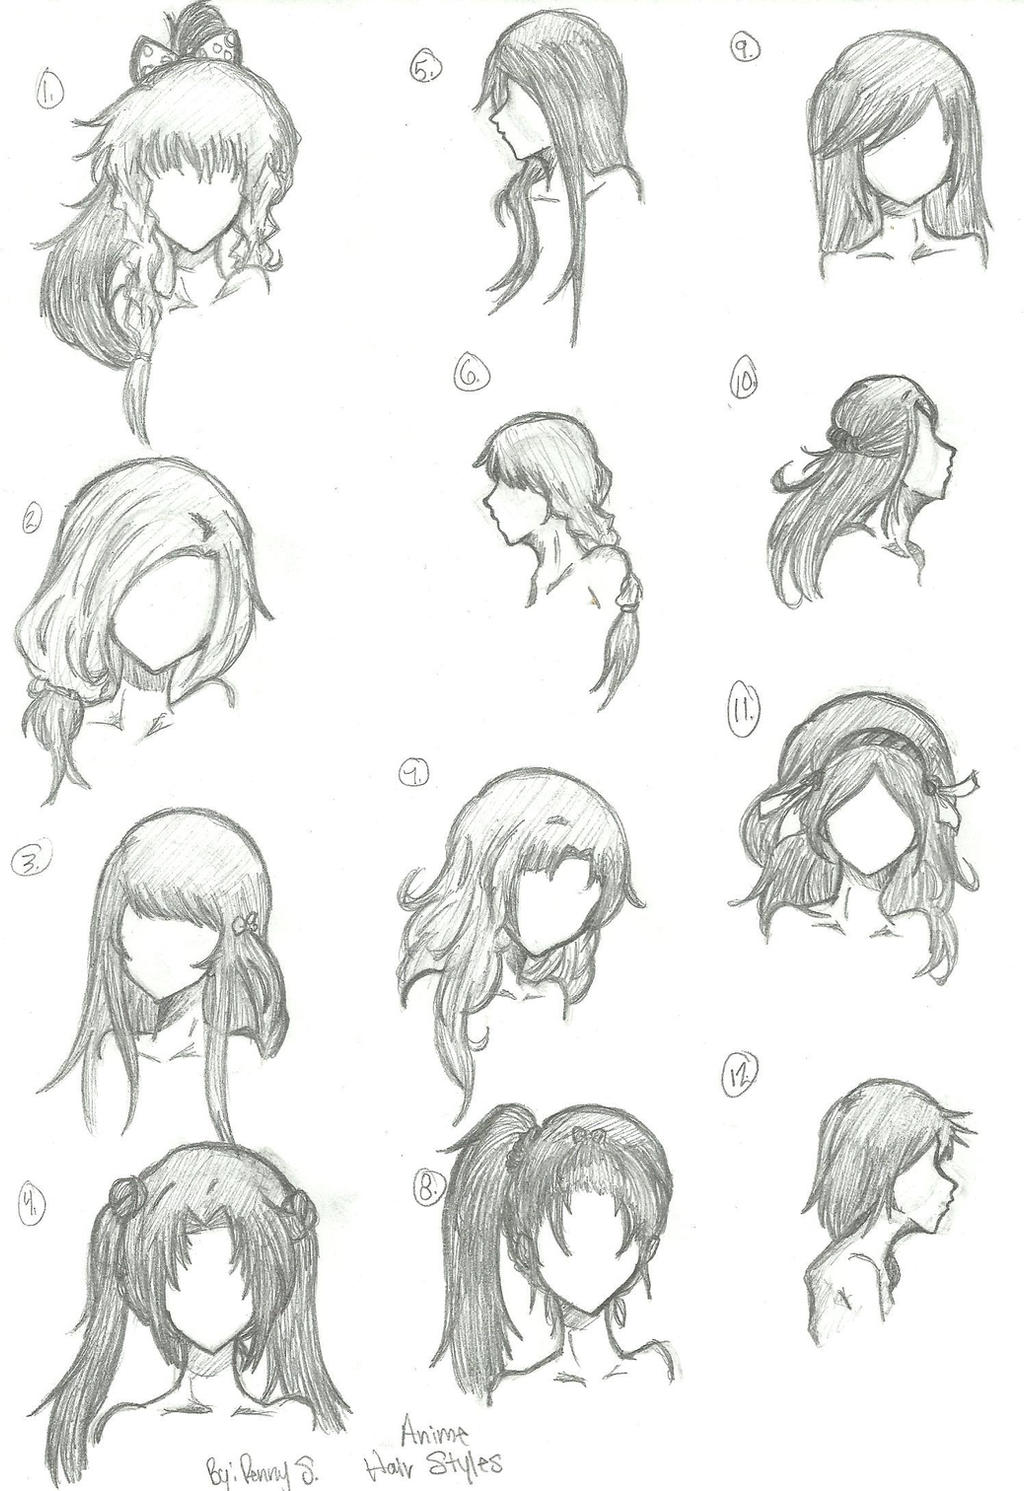 Hair Styles 1 12 By Animebleach14 On DeviantArt